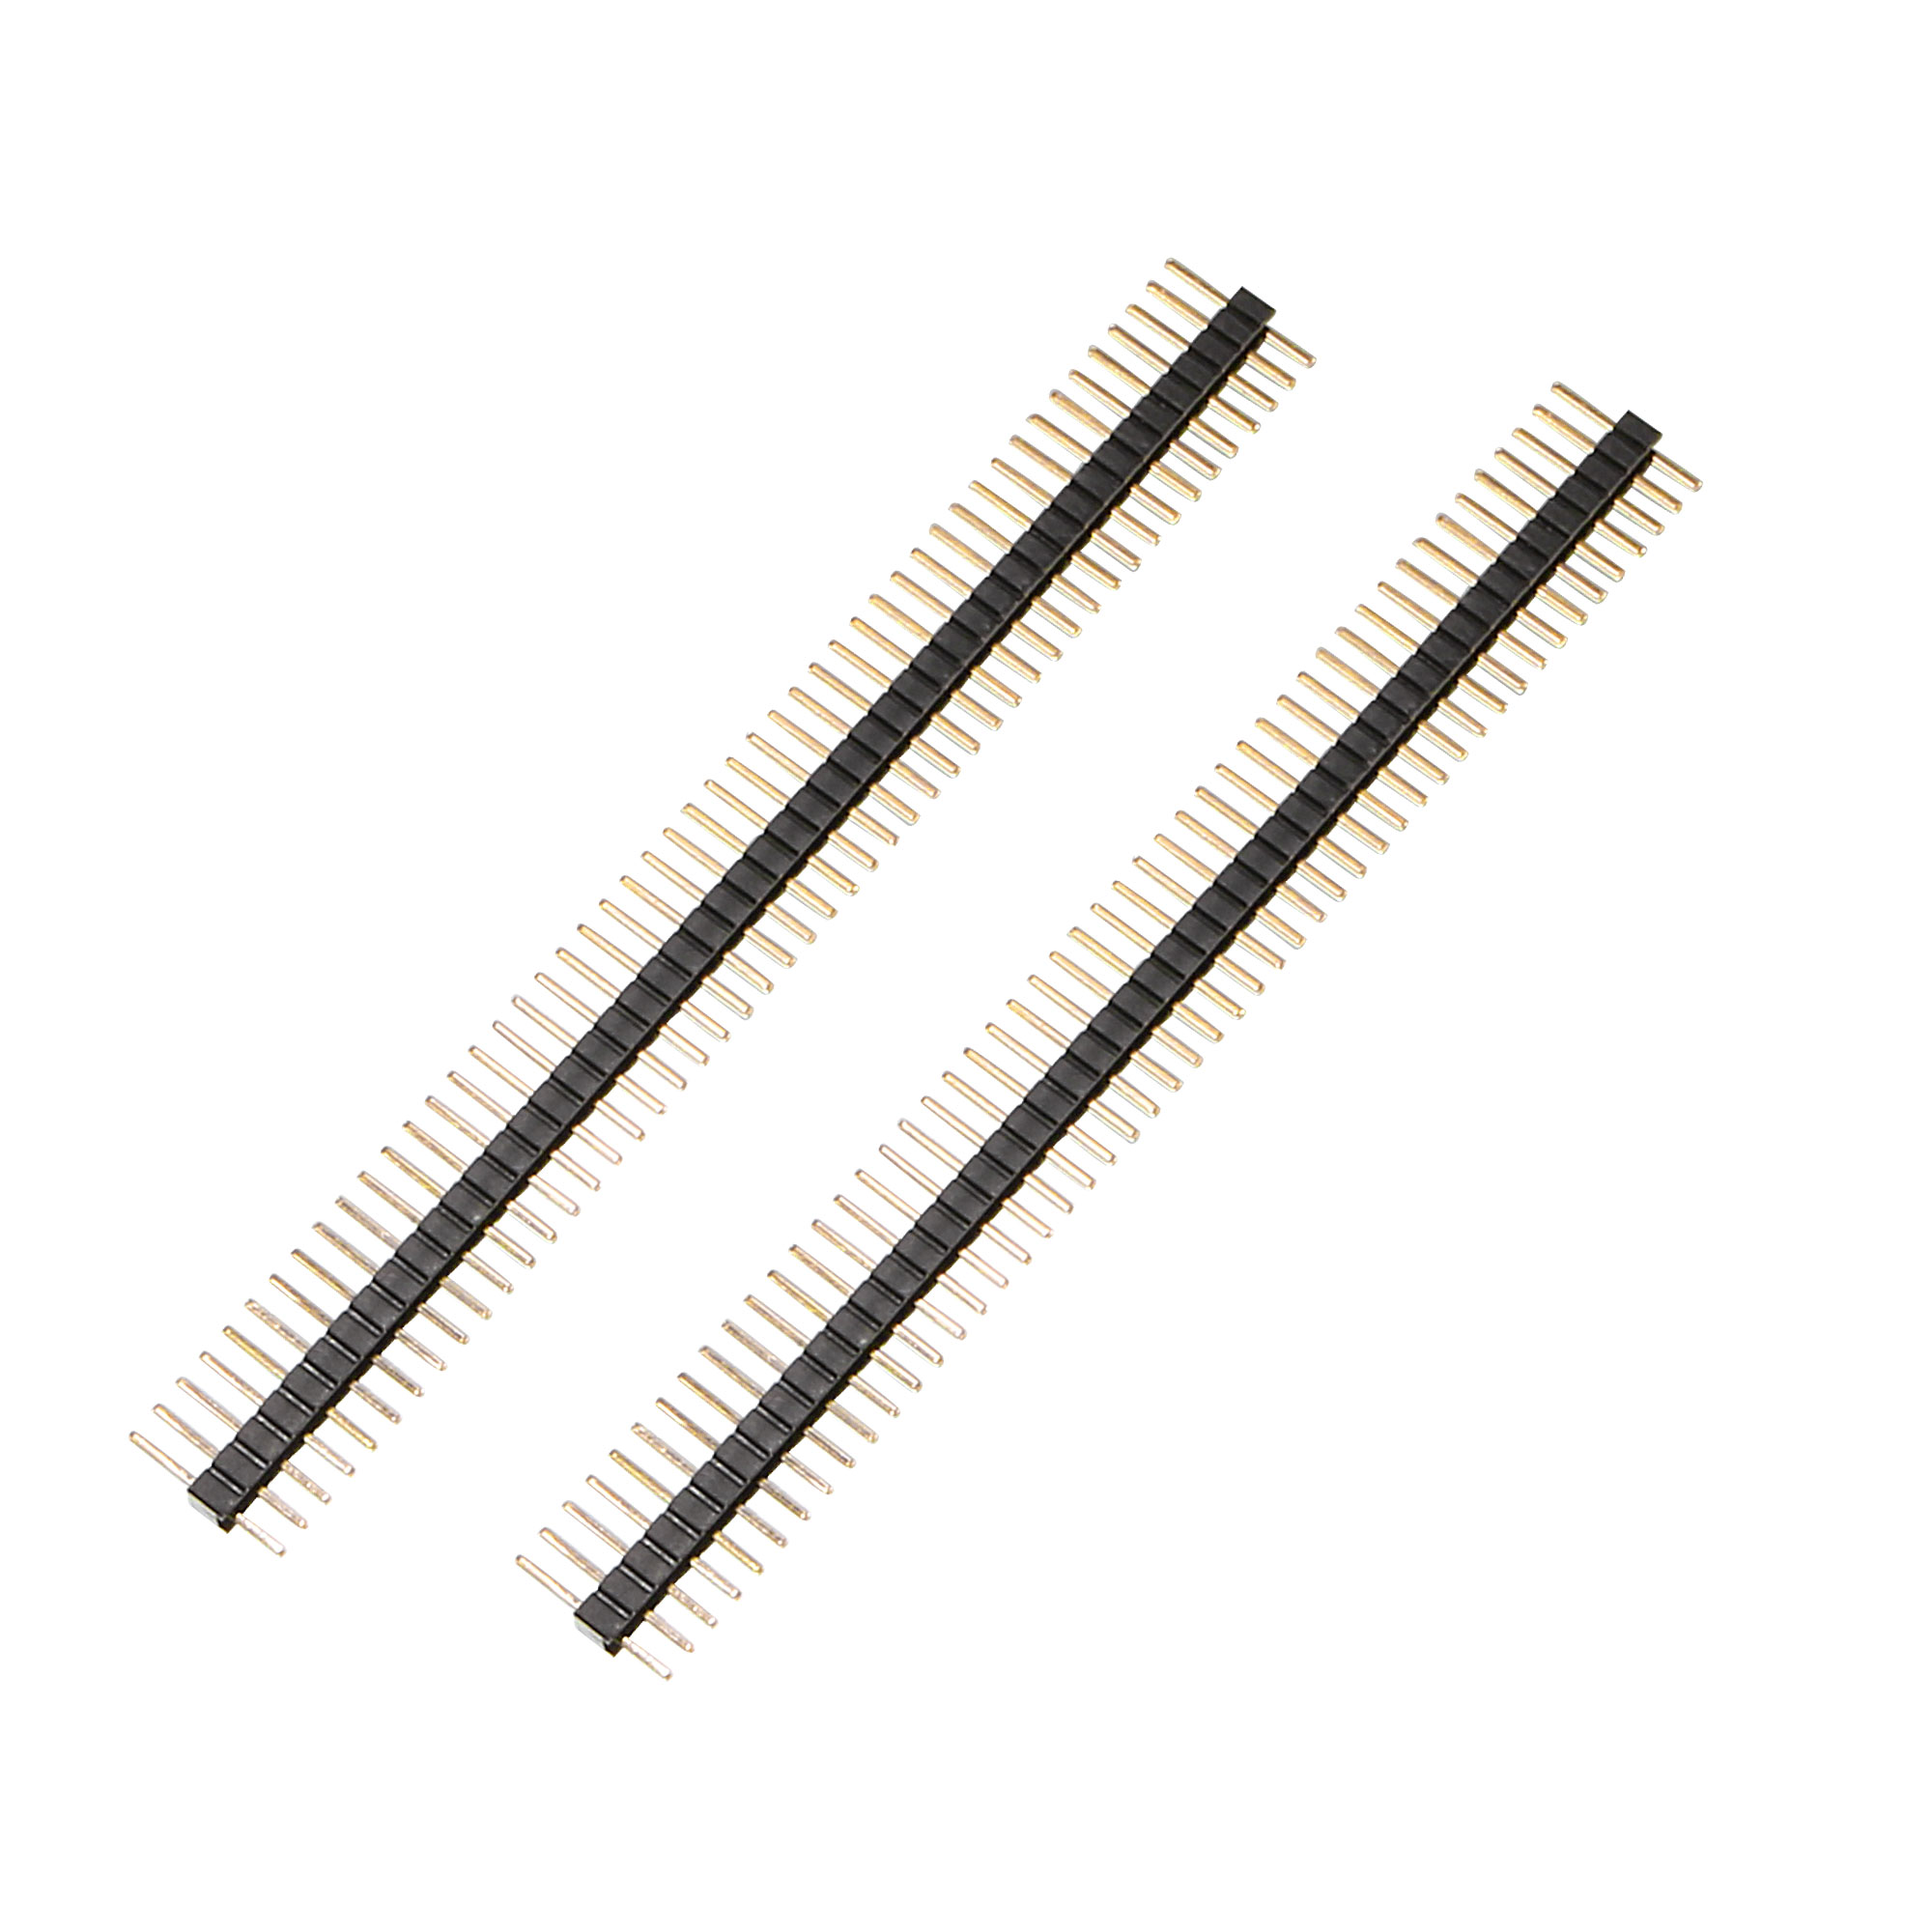 100pcs 50 Way Single Row Straight Pin Male Header Strip 1.27mm Pitch